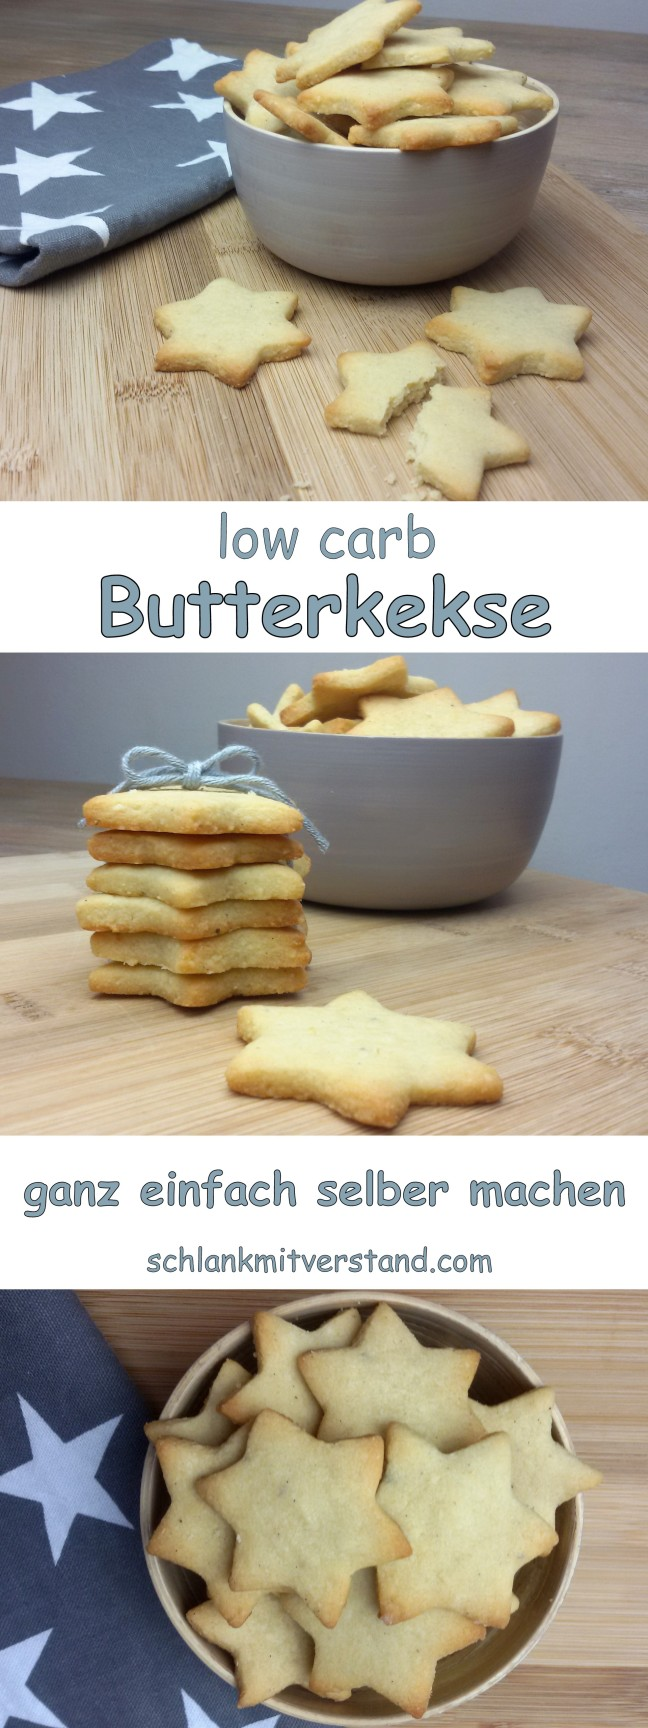 butterkekse-low-carb